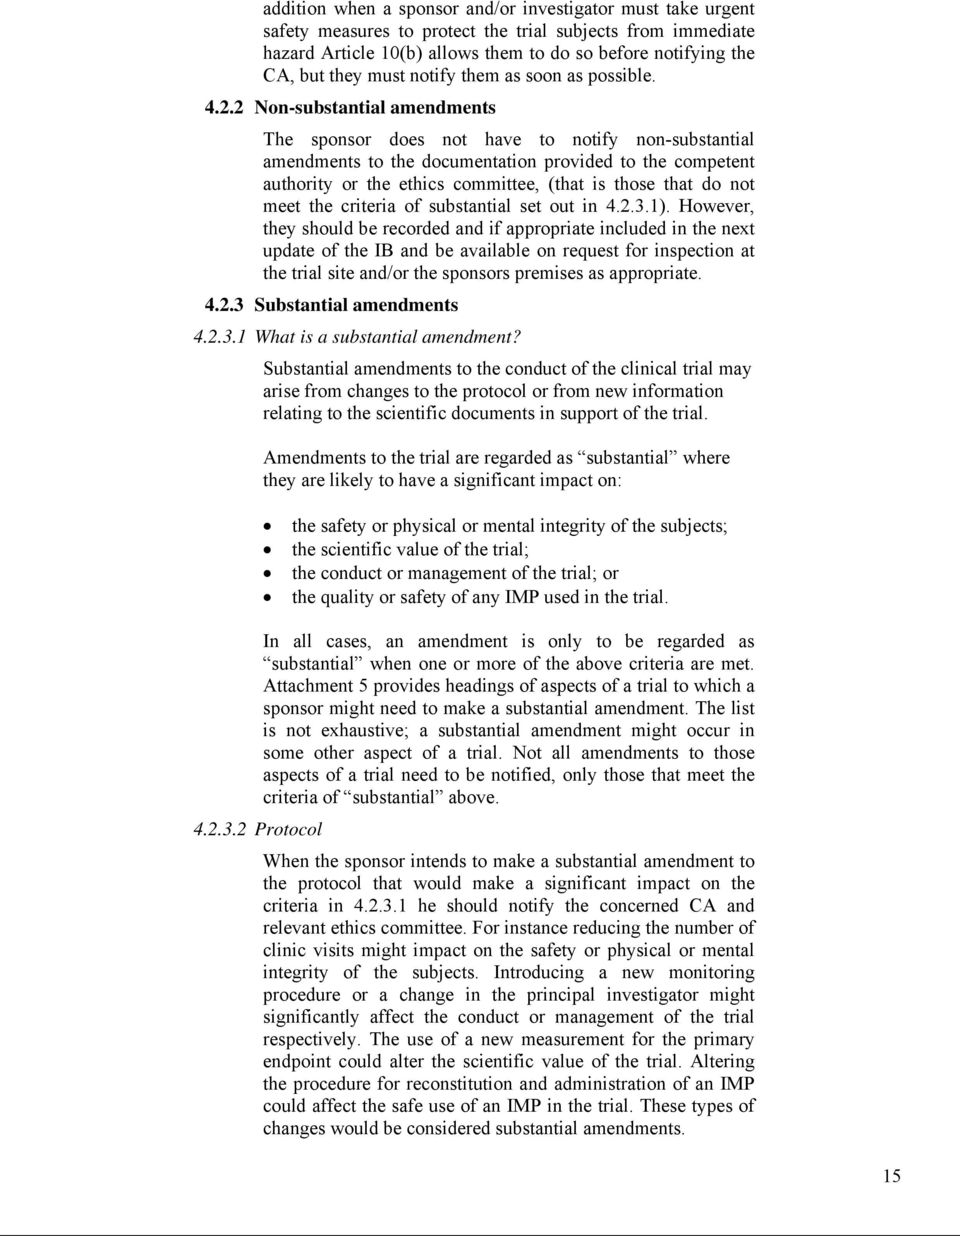 2 Non-substantial amendments The sponsor does not have to notify non-substantial amendments to the documentation provided to the competent authority or the ethics committee, (that is those that do